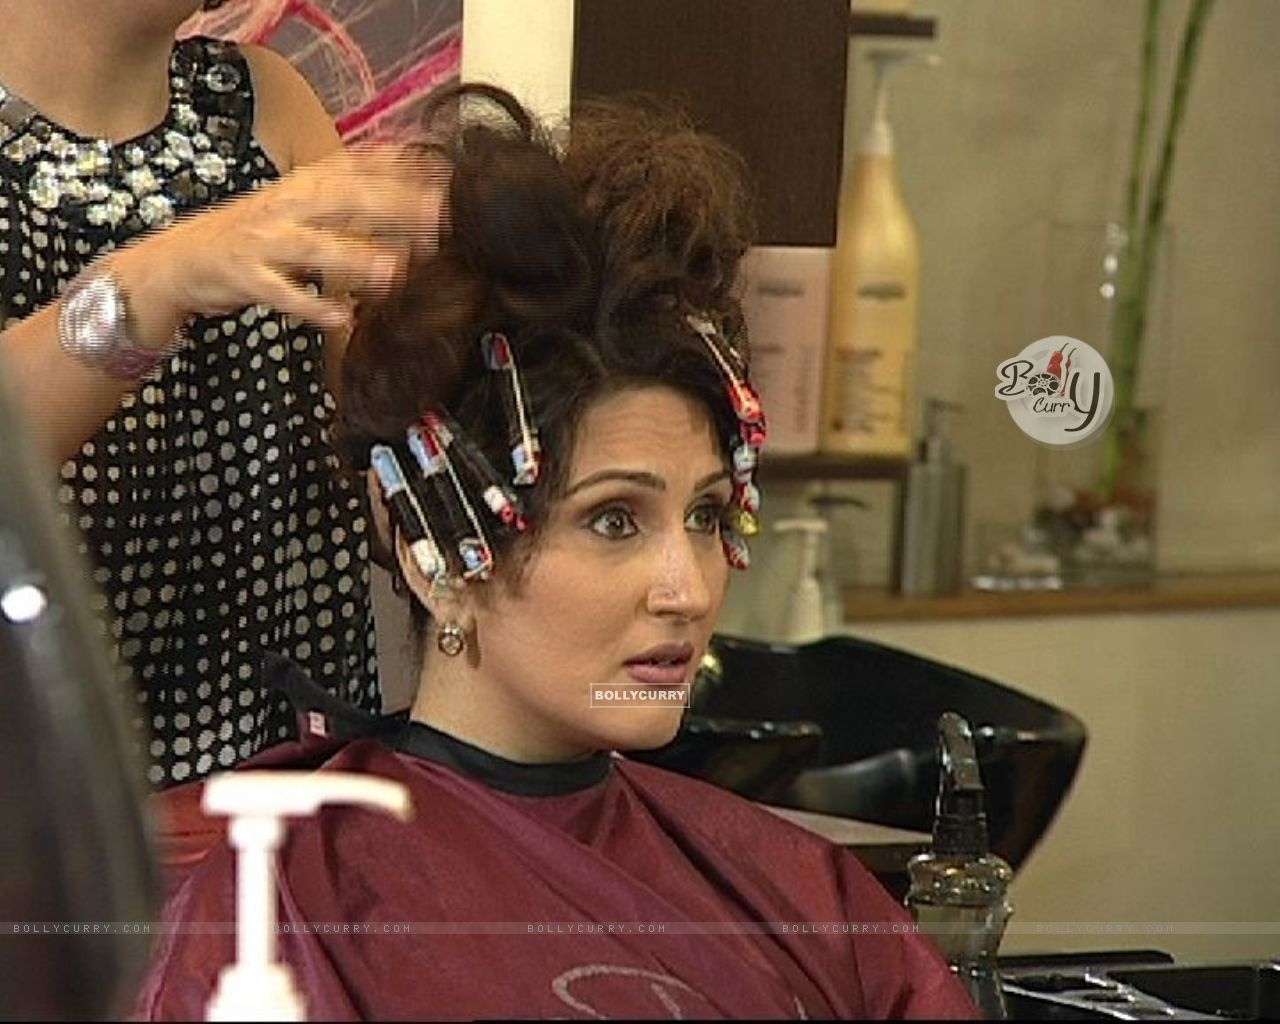 Wallpaper - Radhika doing hairstyle in Beauty Parlour (37385) size